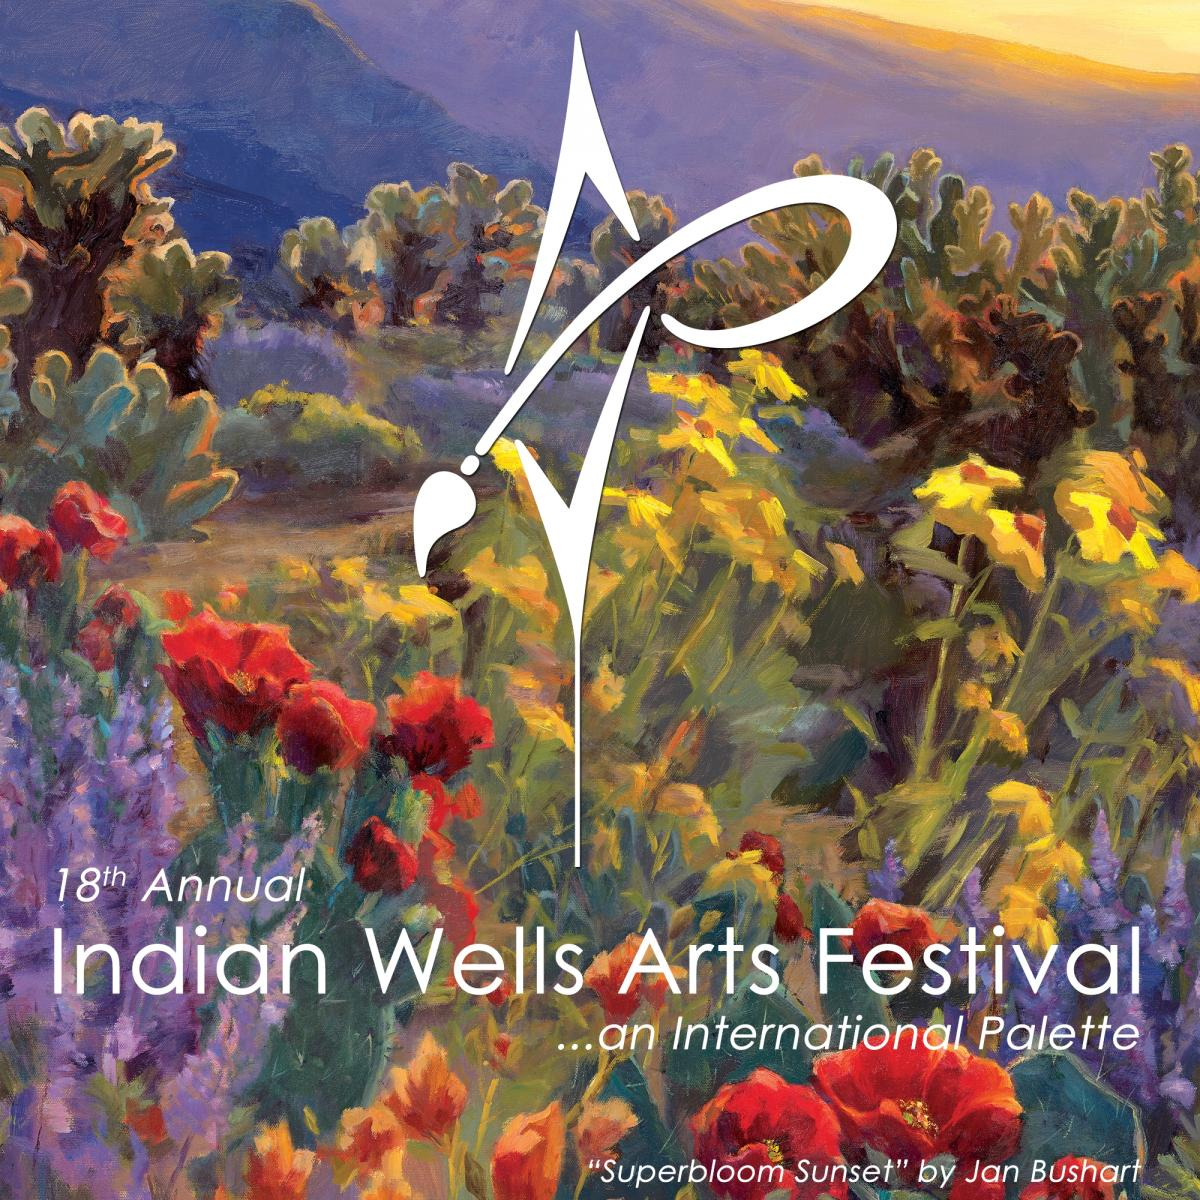 18th Annual Indian Wells Arts Festival